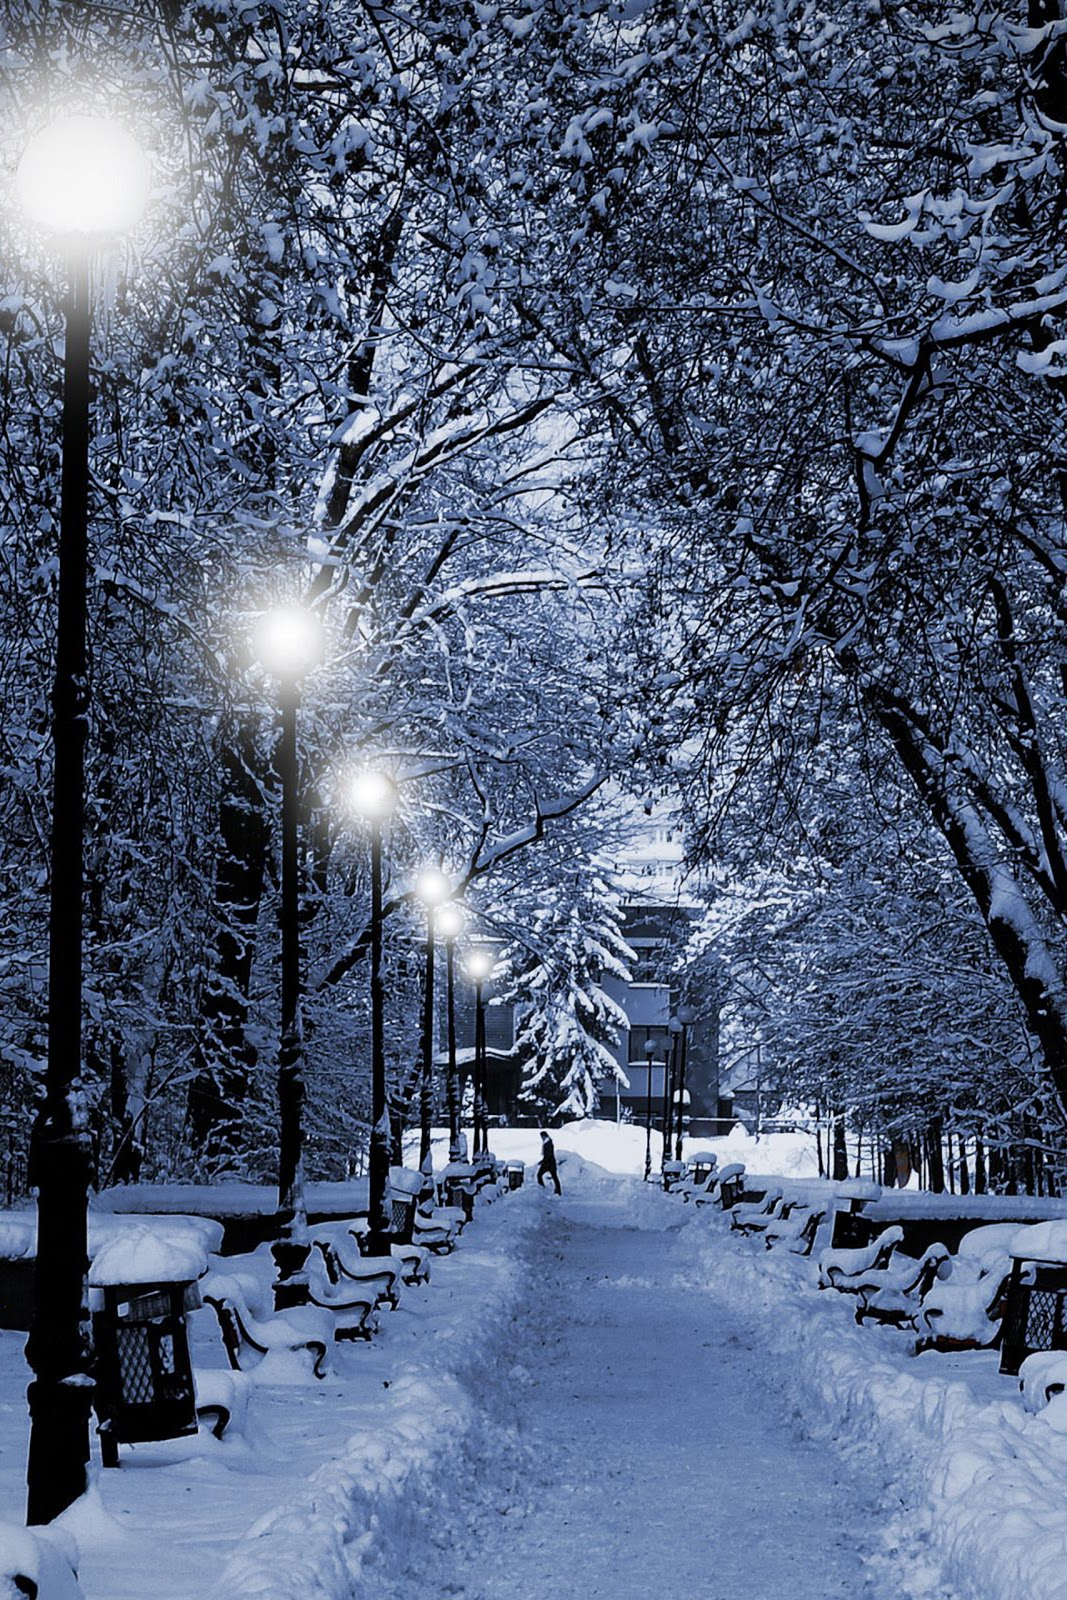 http://3.bp.blogspot.com/-f4xrfws-muw/Tutum9zHFqI/AAAAAAAAB0s/FT3Z8HPDBxg/s1600/Winter%2Bpark_iphone%2B_new%2Byears%2Beve_christmas_santa_wallpaper_1.jpg